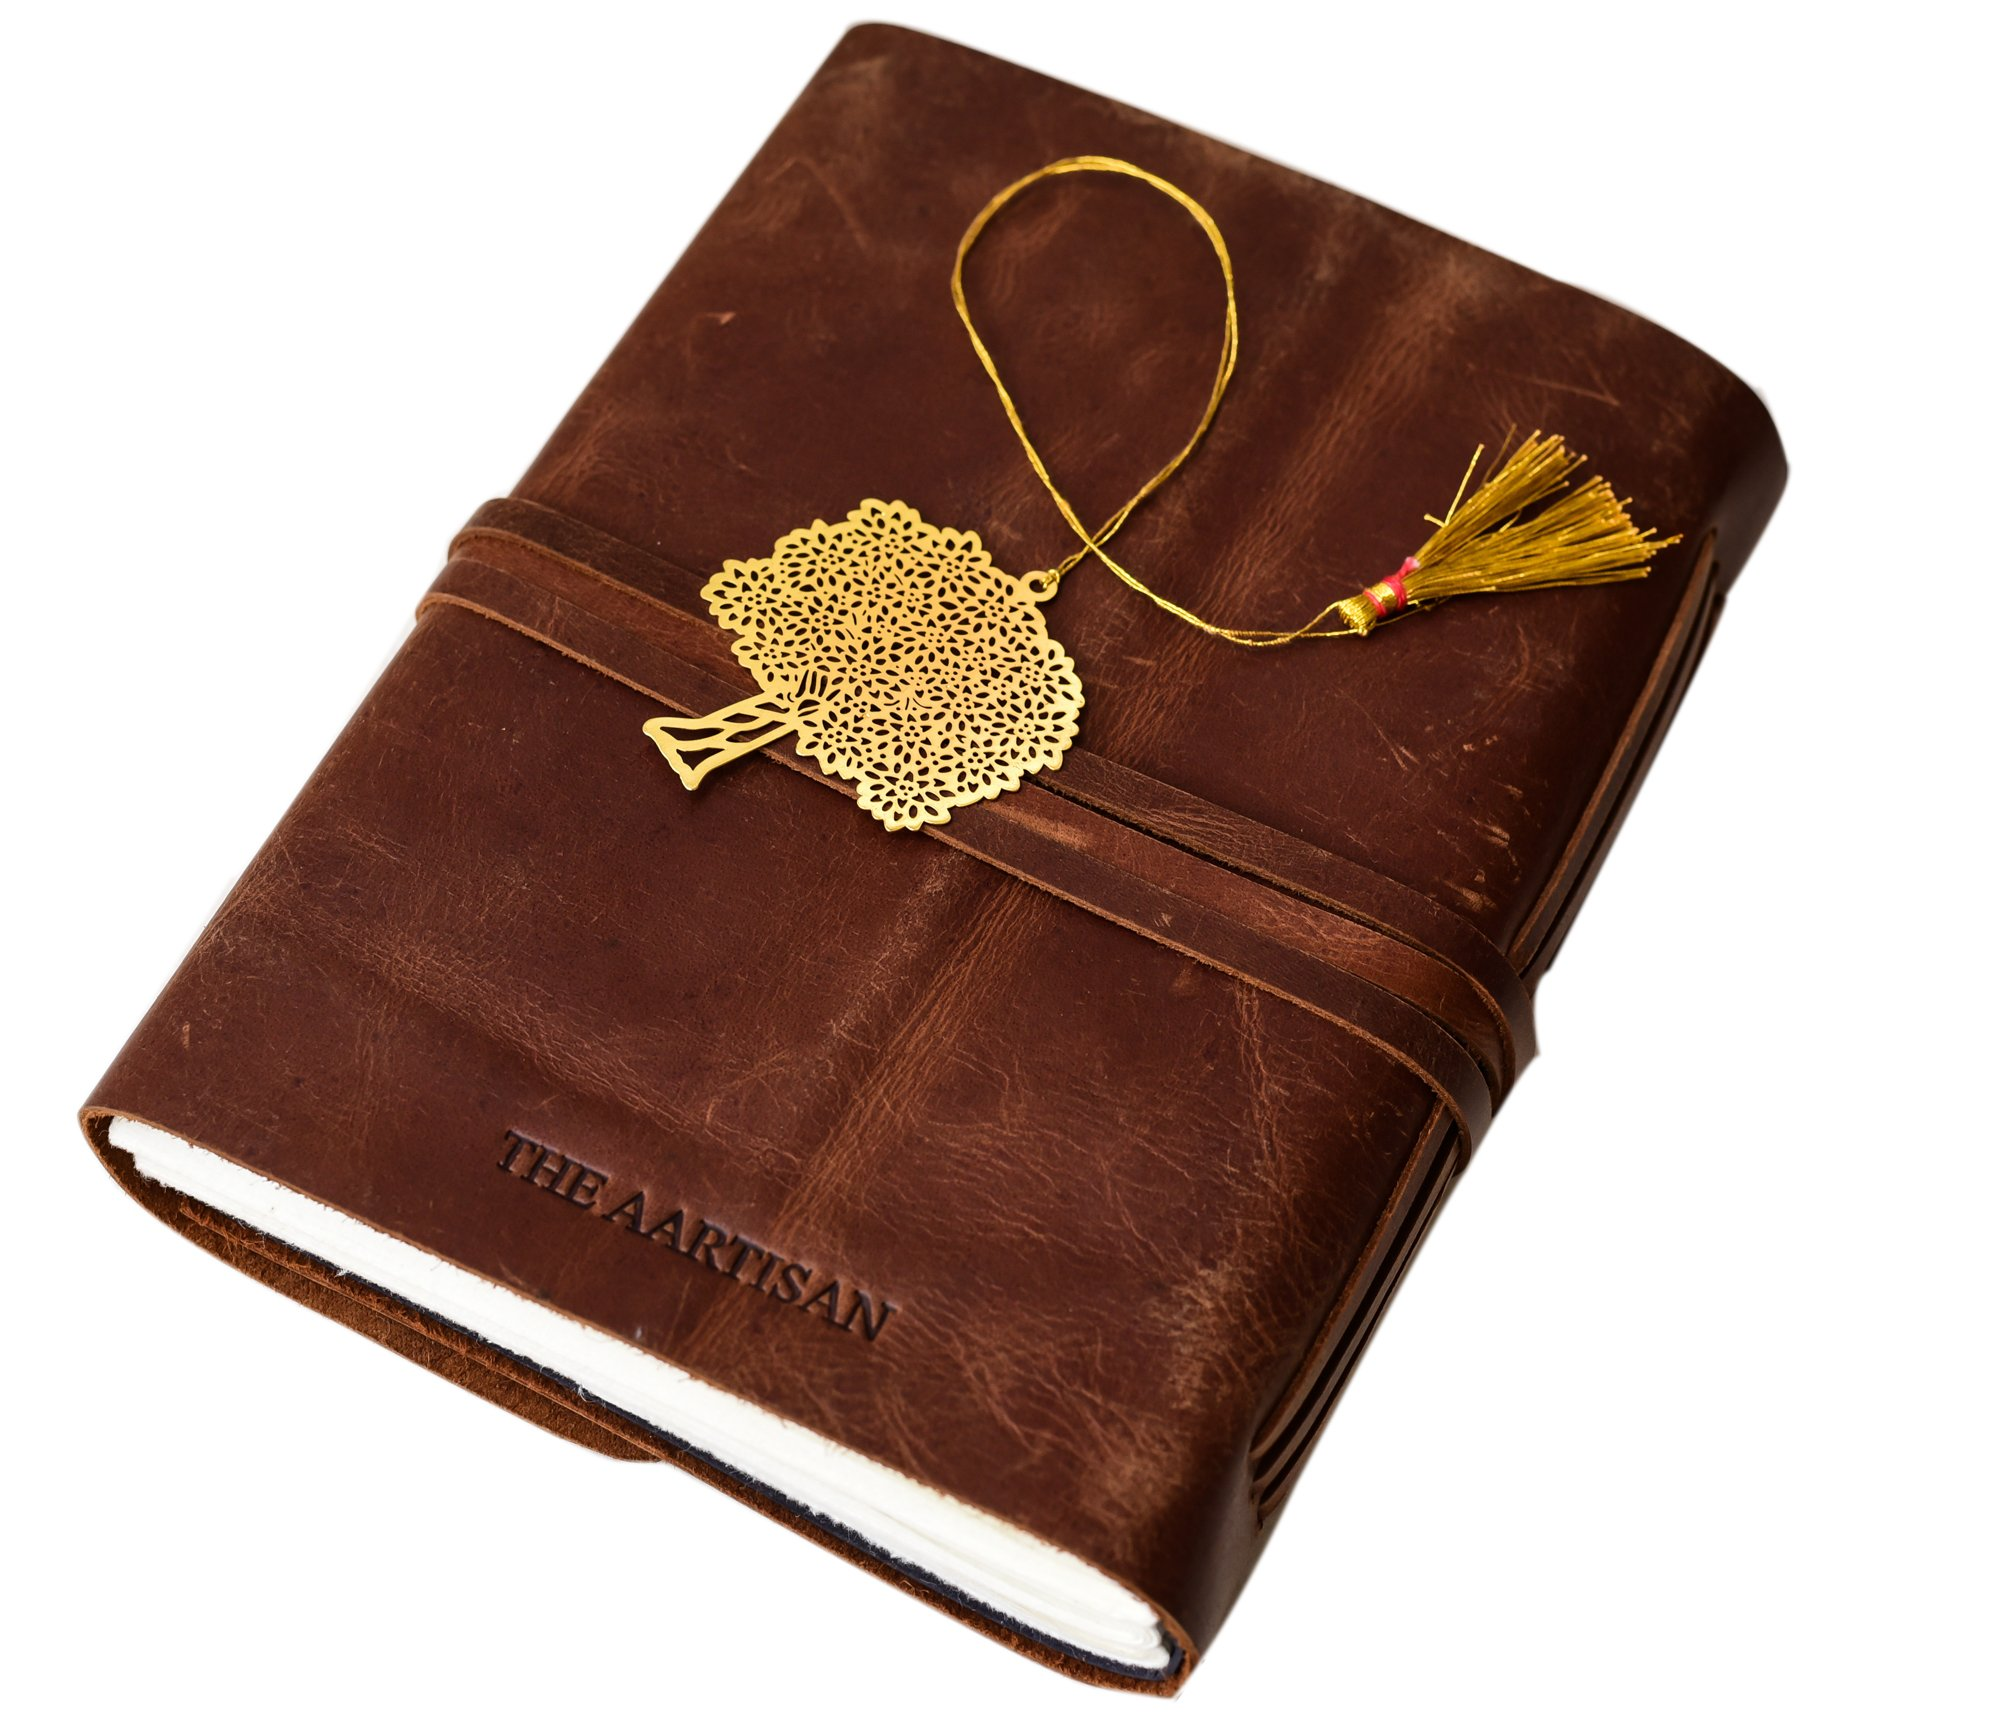 Premium Leather Journal Writing Notebook - Antique Handmade Leather Bound Daily Notebook for Men & Women, Best Gift for Art Sketchbook, Travel Diary & Notebooks to Write in